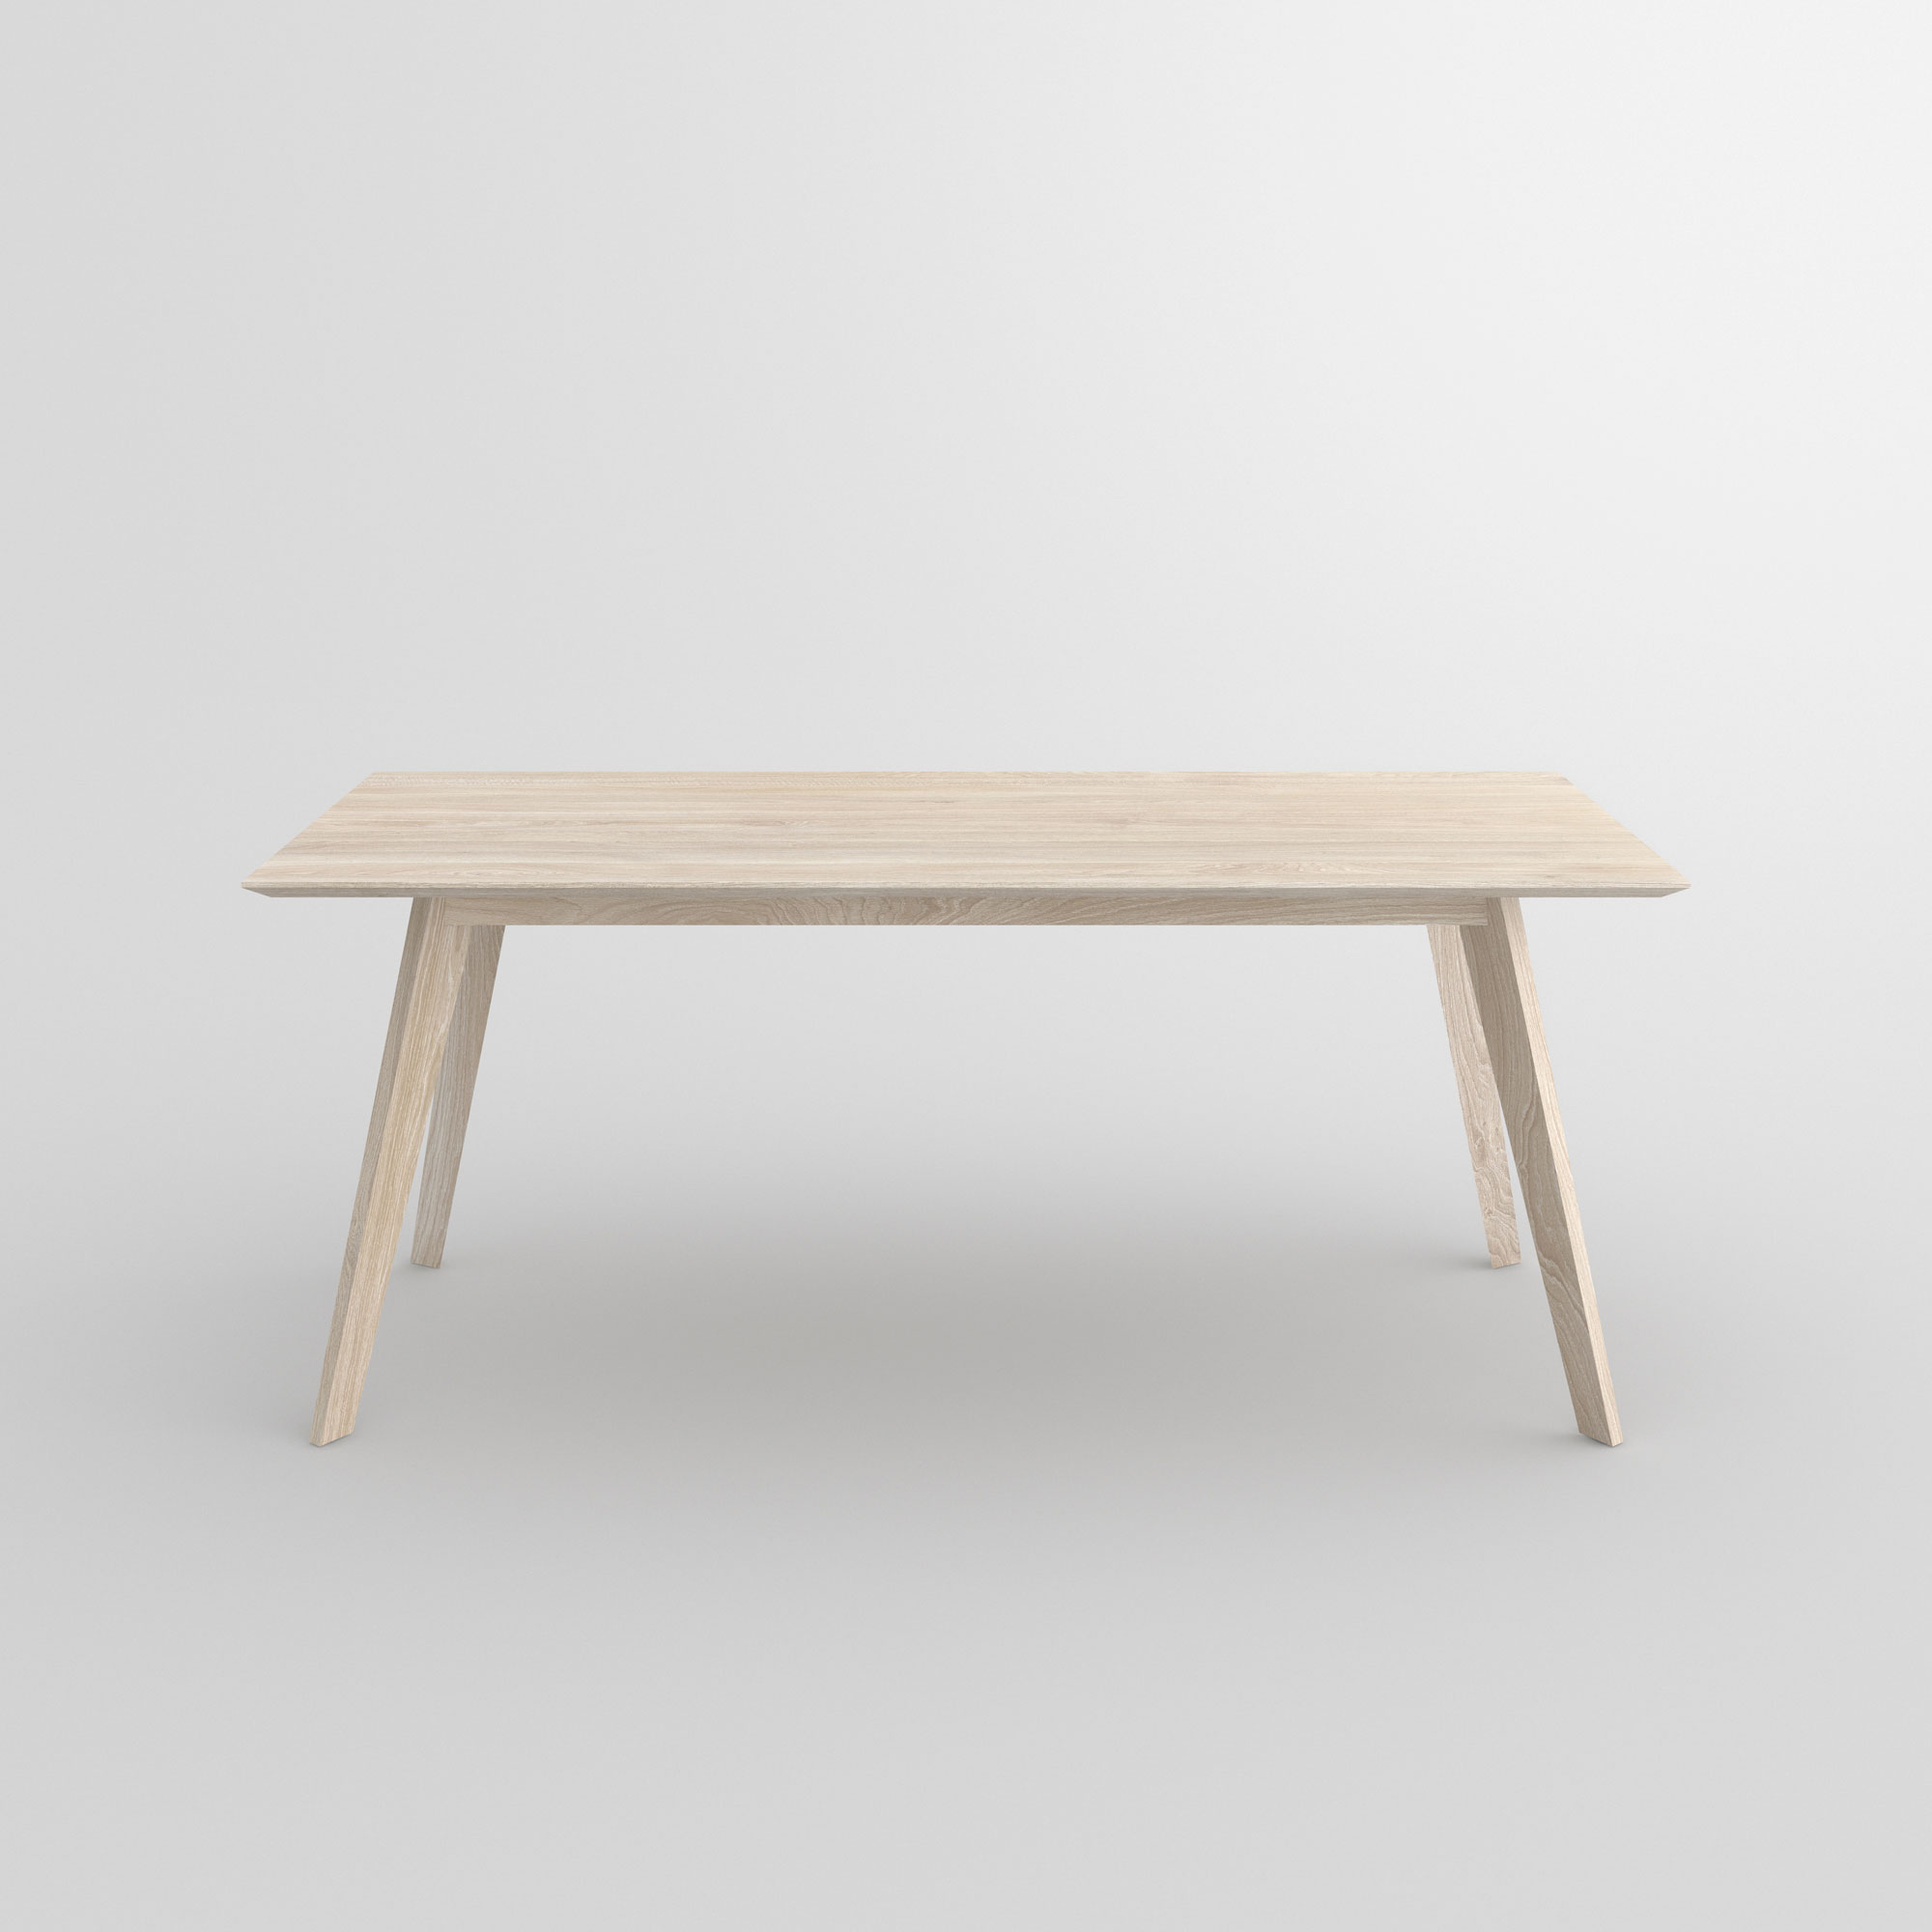 Solid Wood Dining Table CITIUS cam2 custom made in solid wood by vitamin design